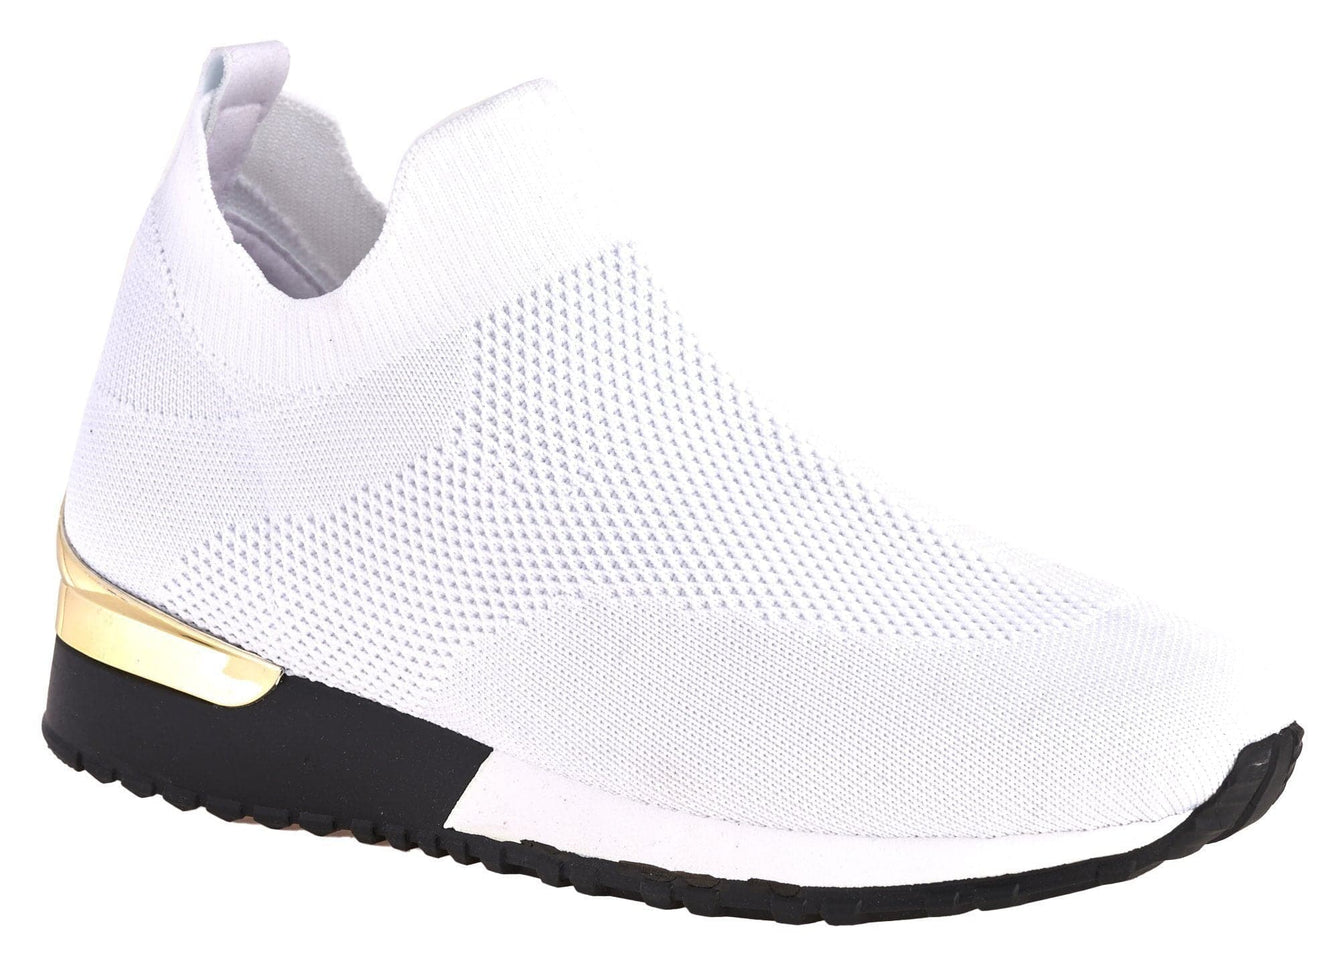 Arizona Slip On Sock Trainer With Gold Detail in White Trainers Miss Diva White 7